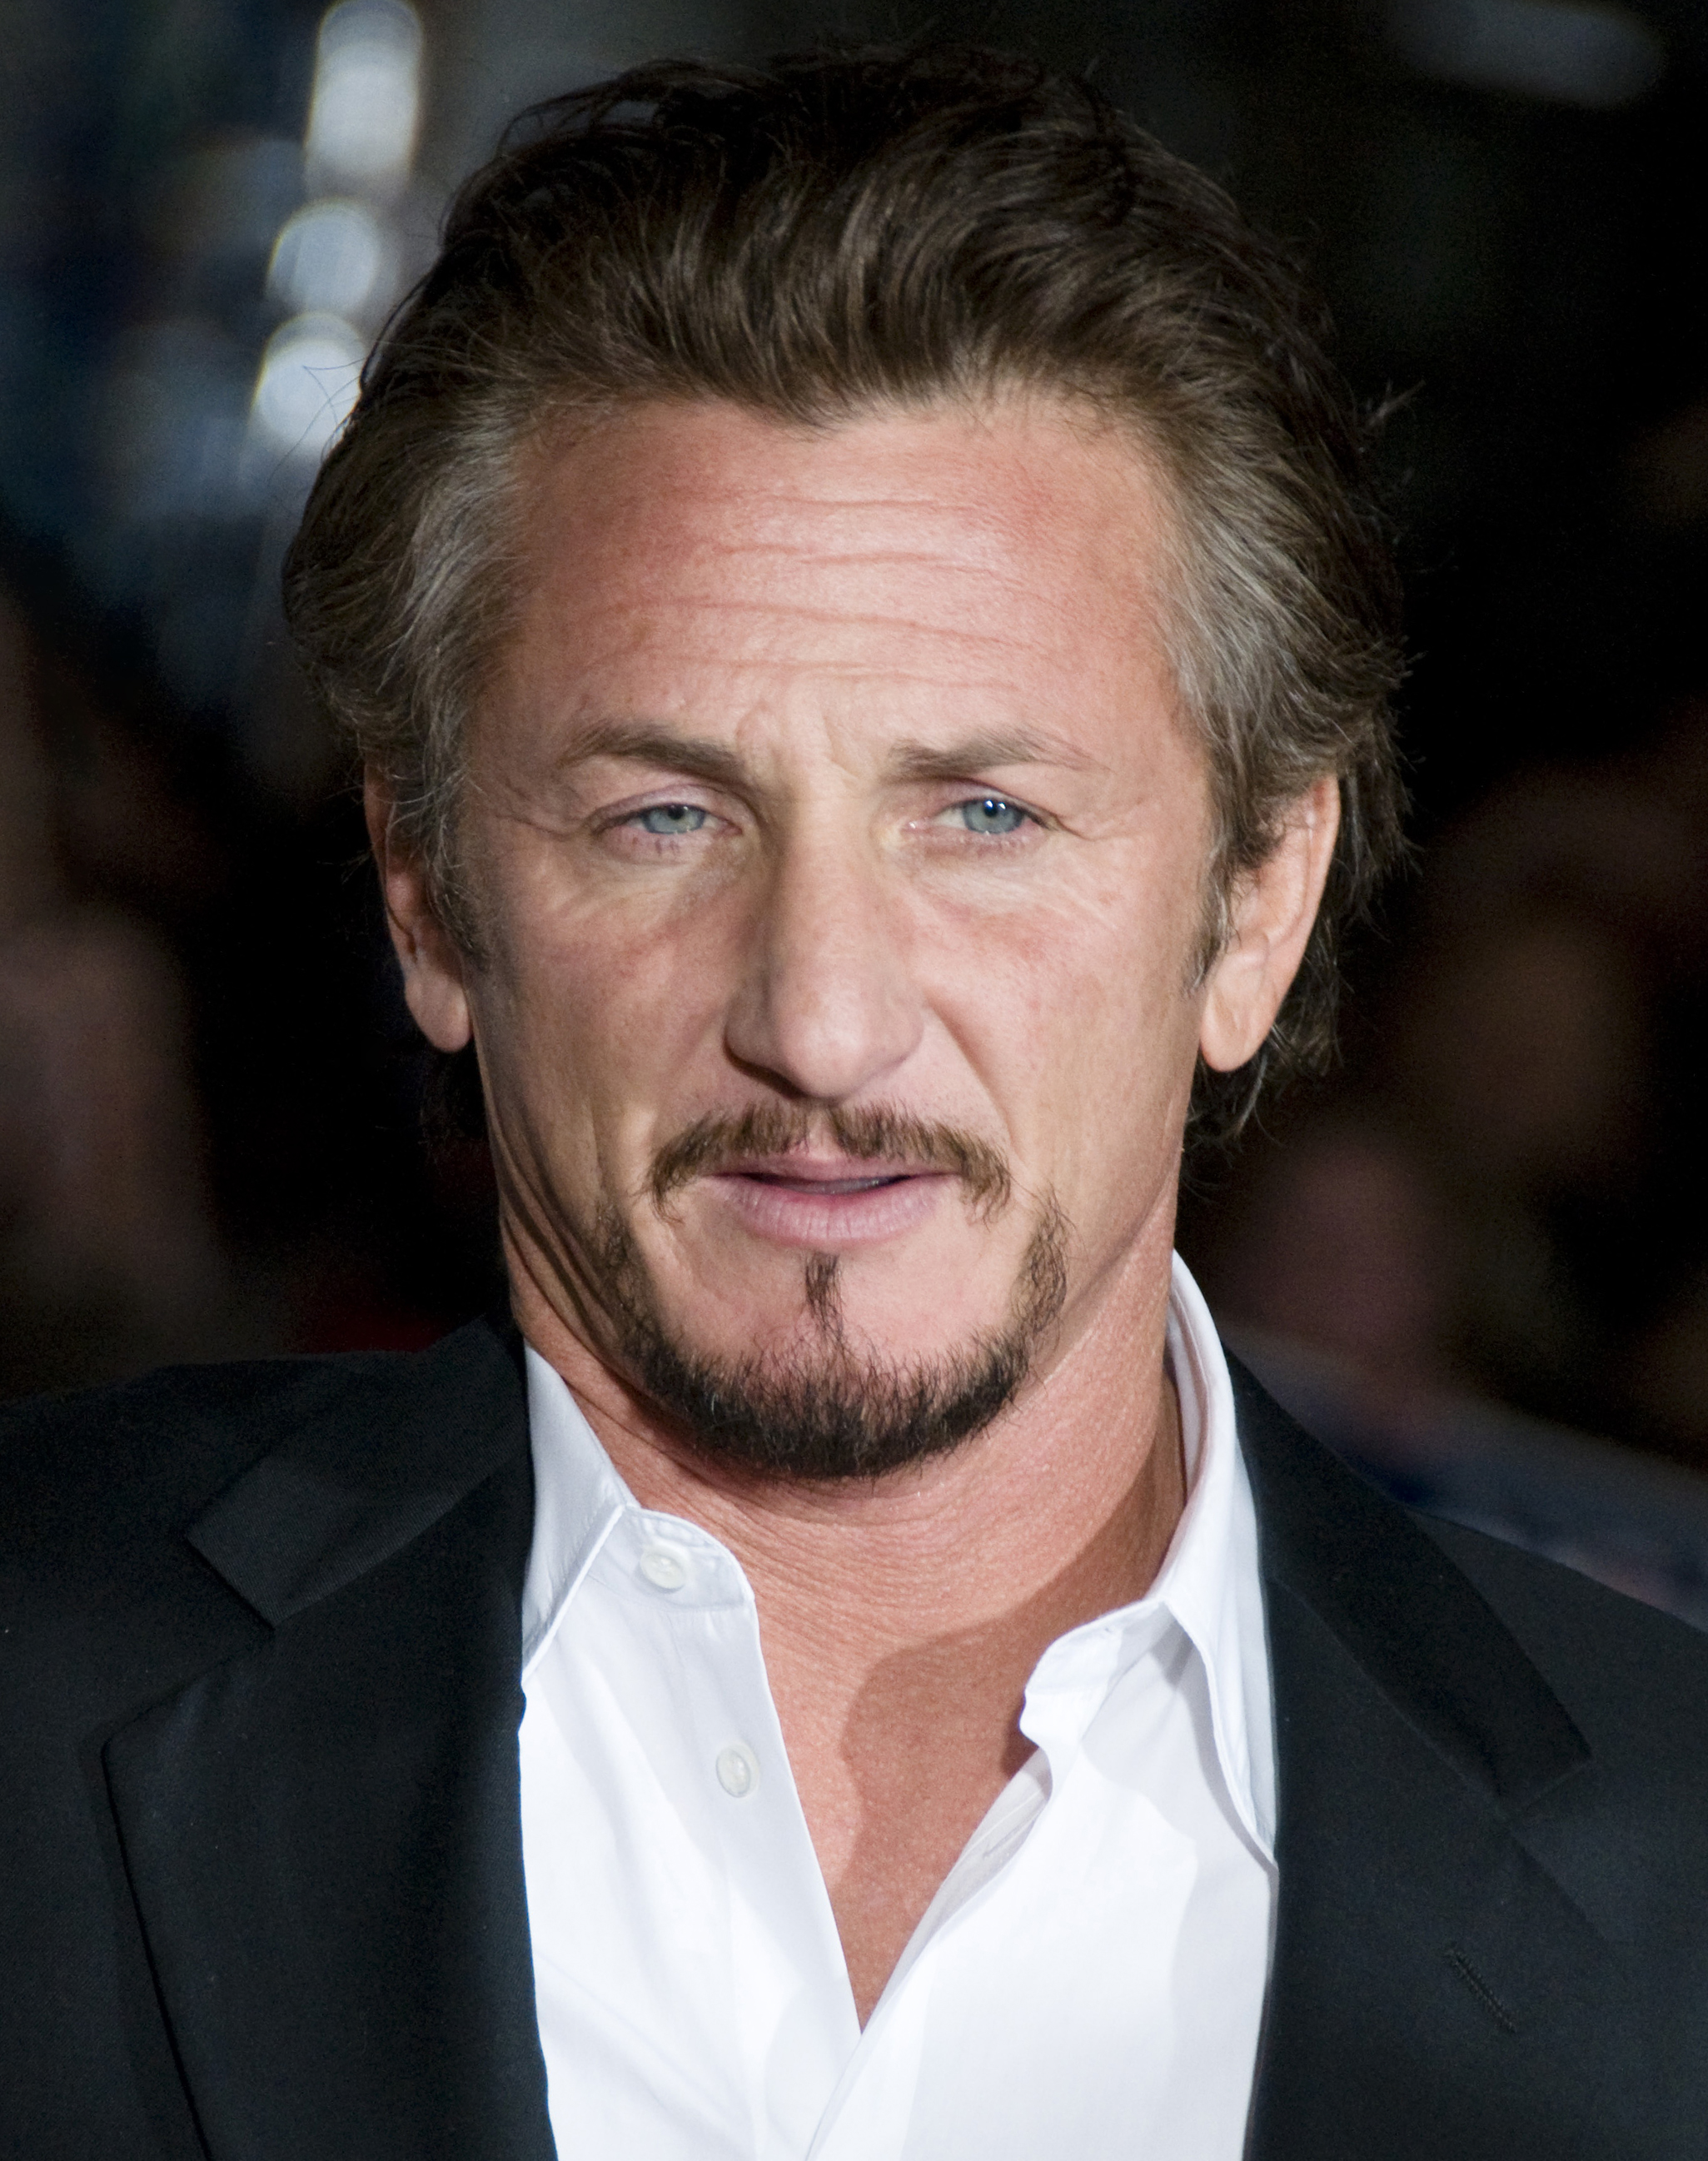 The 56-year old son of father Leo Penn and mother Eileen Ryan, 173 cm tall Sean Penn in 2017 photo